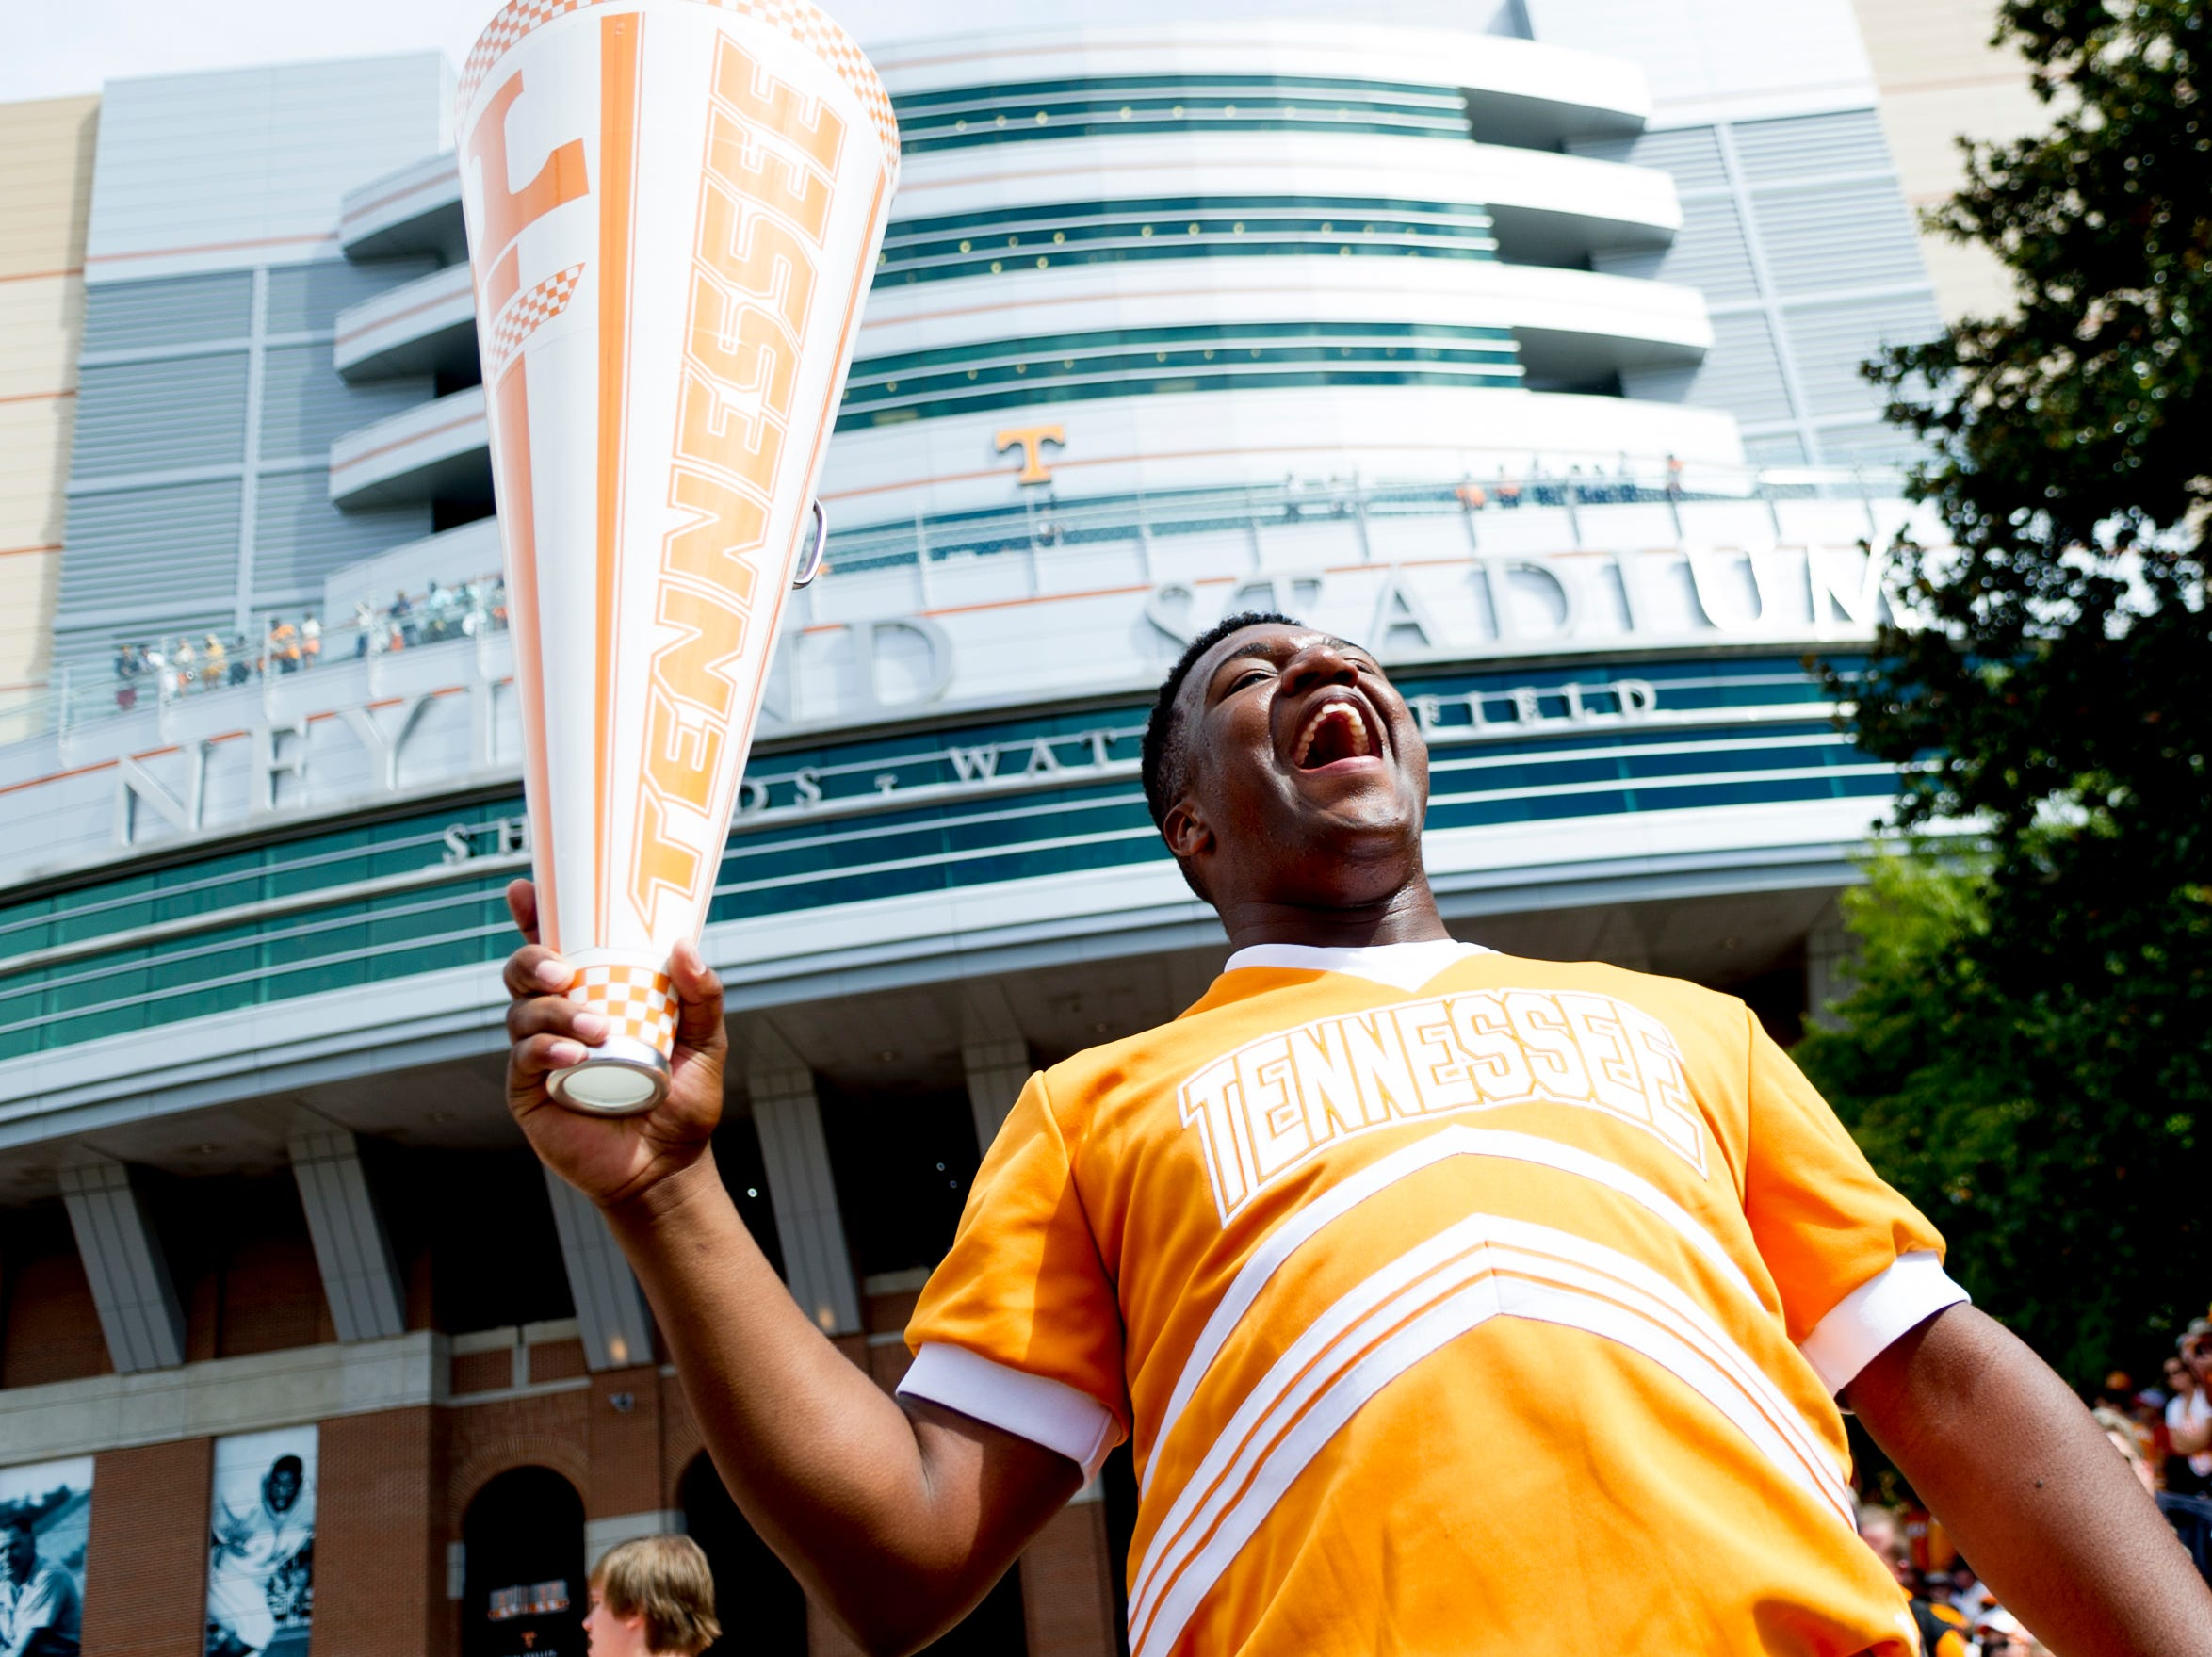 A UT cheerleader pumps up the crowd during the Vol Walk during the Tennessee Volunteers vs. Georgia Bulldogs game at Neyland Stadium in Knoxville, Tennessee on Saturday, September 30, 2017.